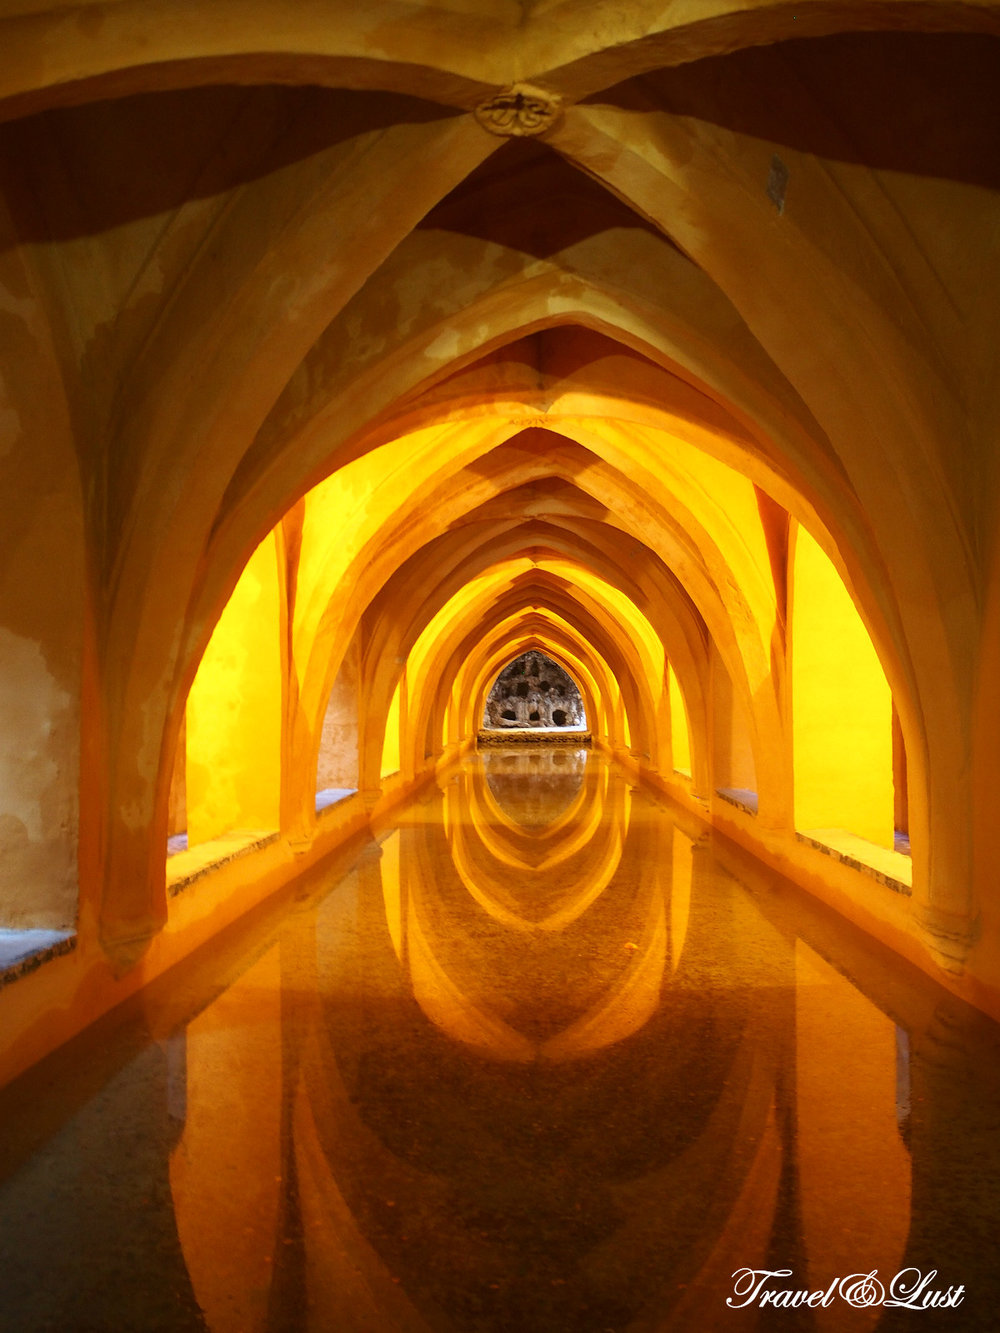 Rainwater tanks under the Alcazar of Seville. María de Padilla (c.1334-1, Seville, July 1361) was a noblewoman, famous for her love for King Pedro I of Castile.Maria was the daughter of Juan García de Padilla (died between 1348 and 1351) and María González de Hinestrosa (died after September of 1356) and sister of Diego García de Padilla, master of the Order of Calatrava.1 He belonged to a Castilian family, the Padilla, originally from Padilla de Abajo, formerly Padiella de Yuso, a town of Burgos in the Merindad de Castrojeriz, members of the regional nobility.